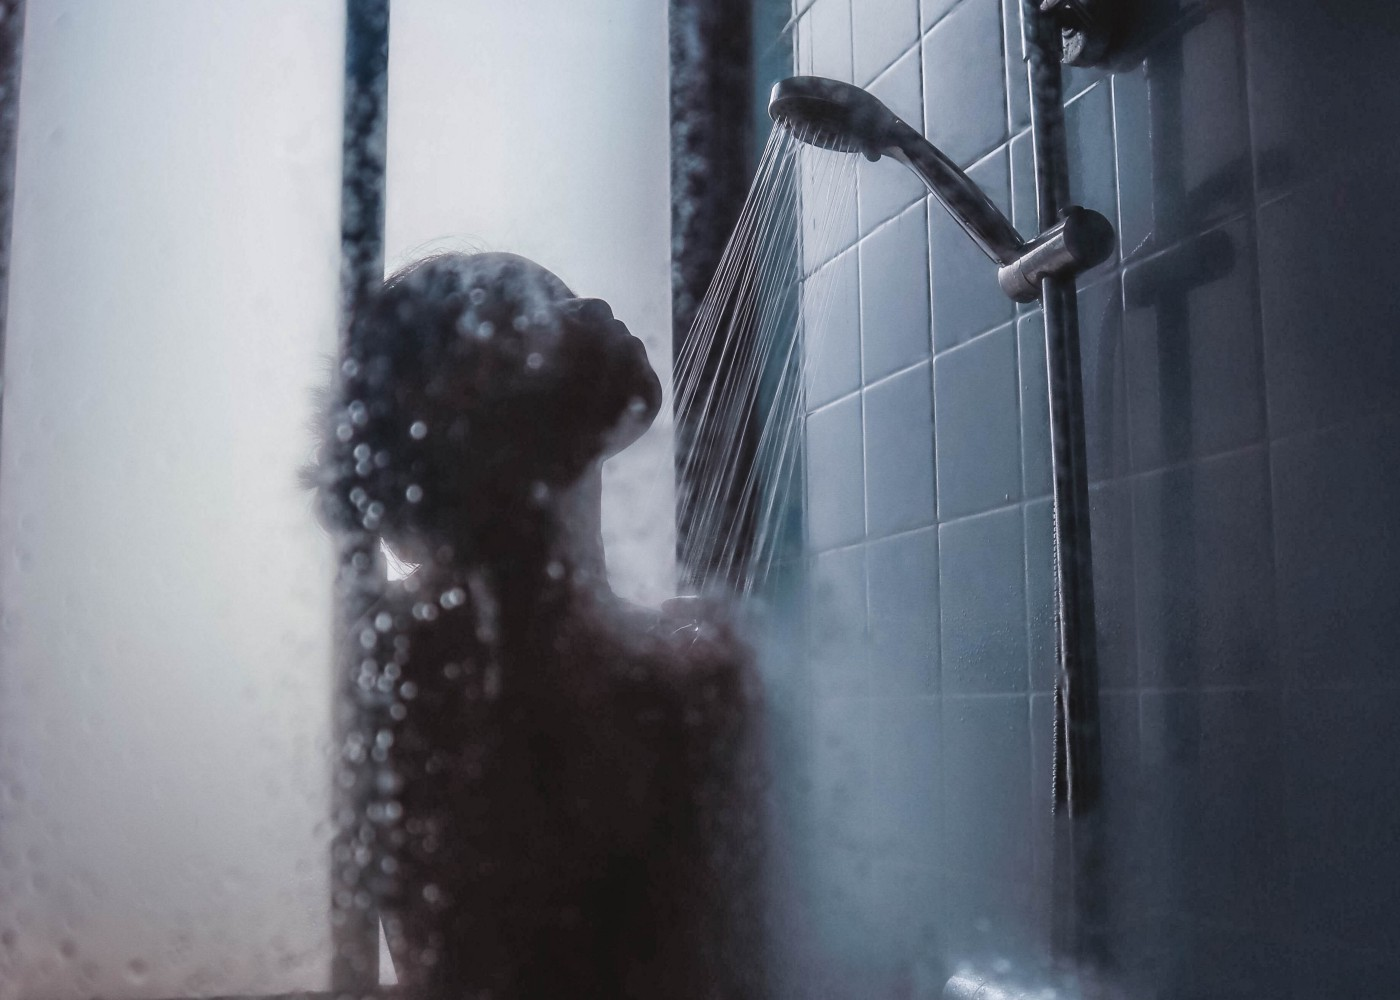 woman alone in the shower